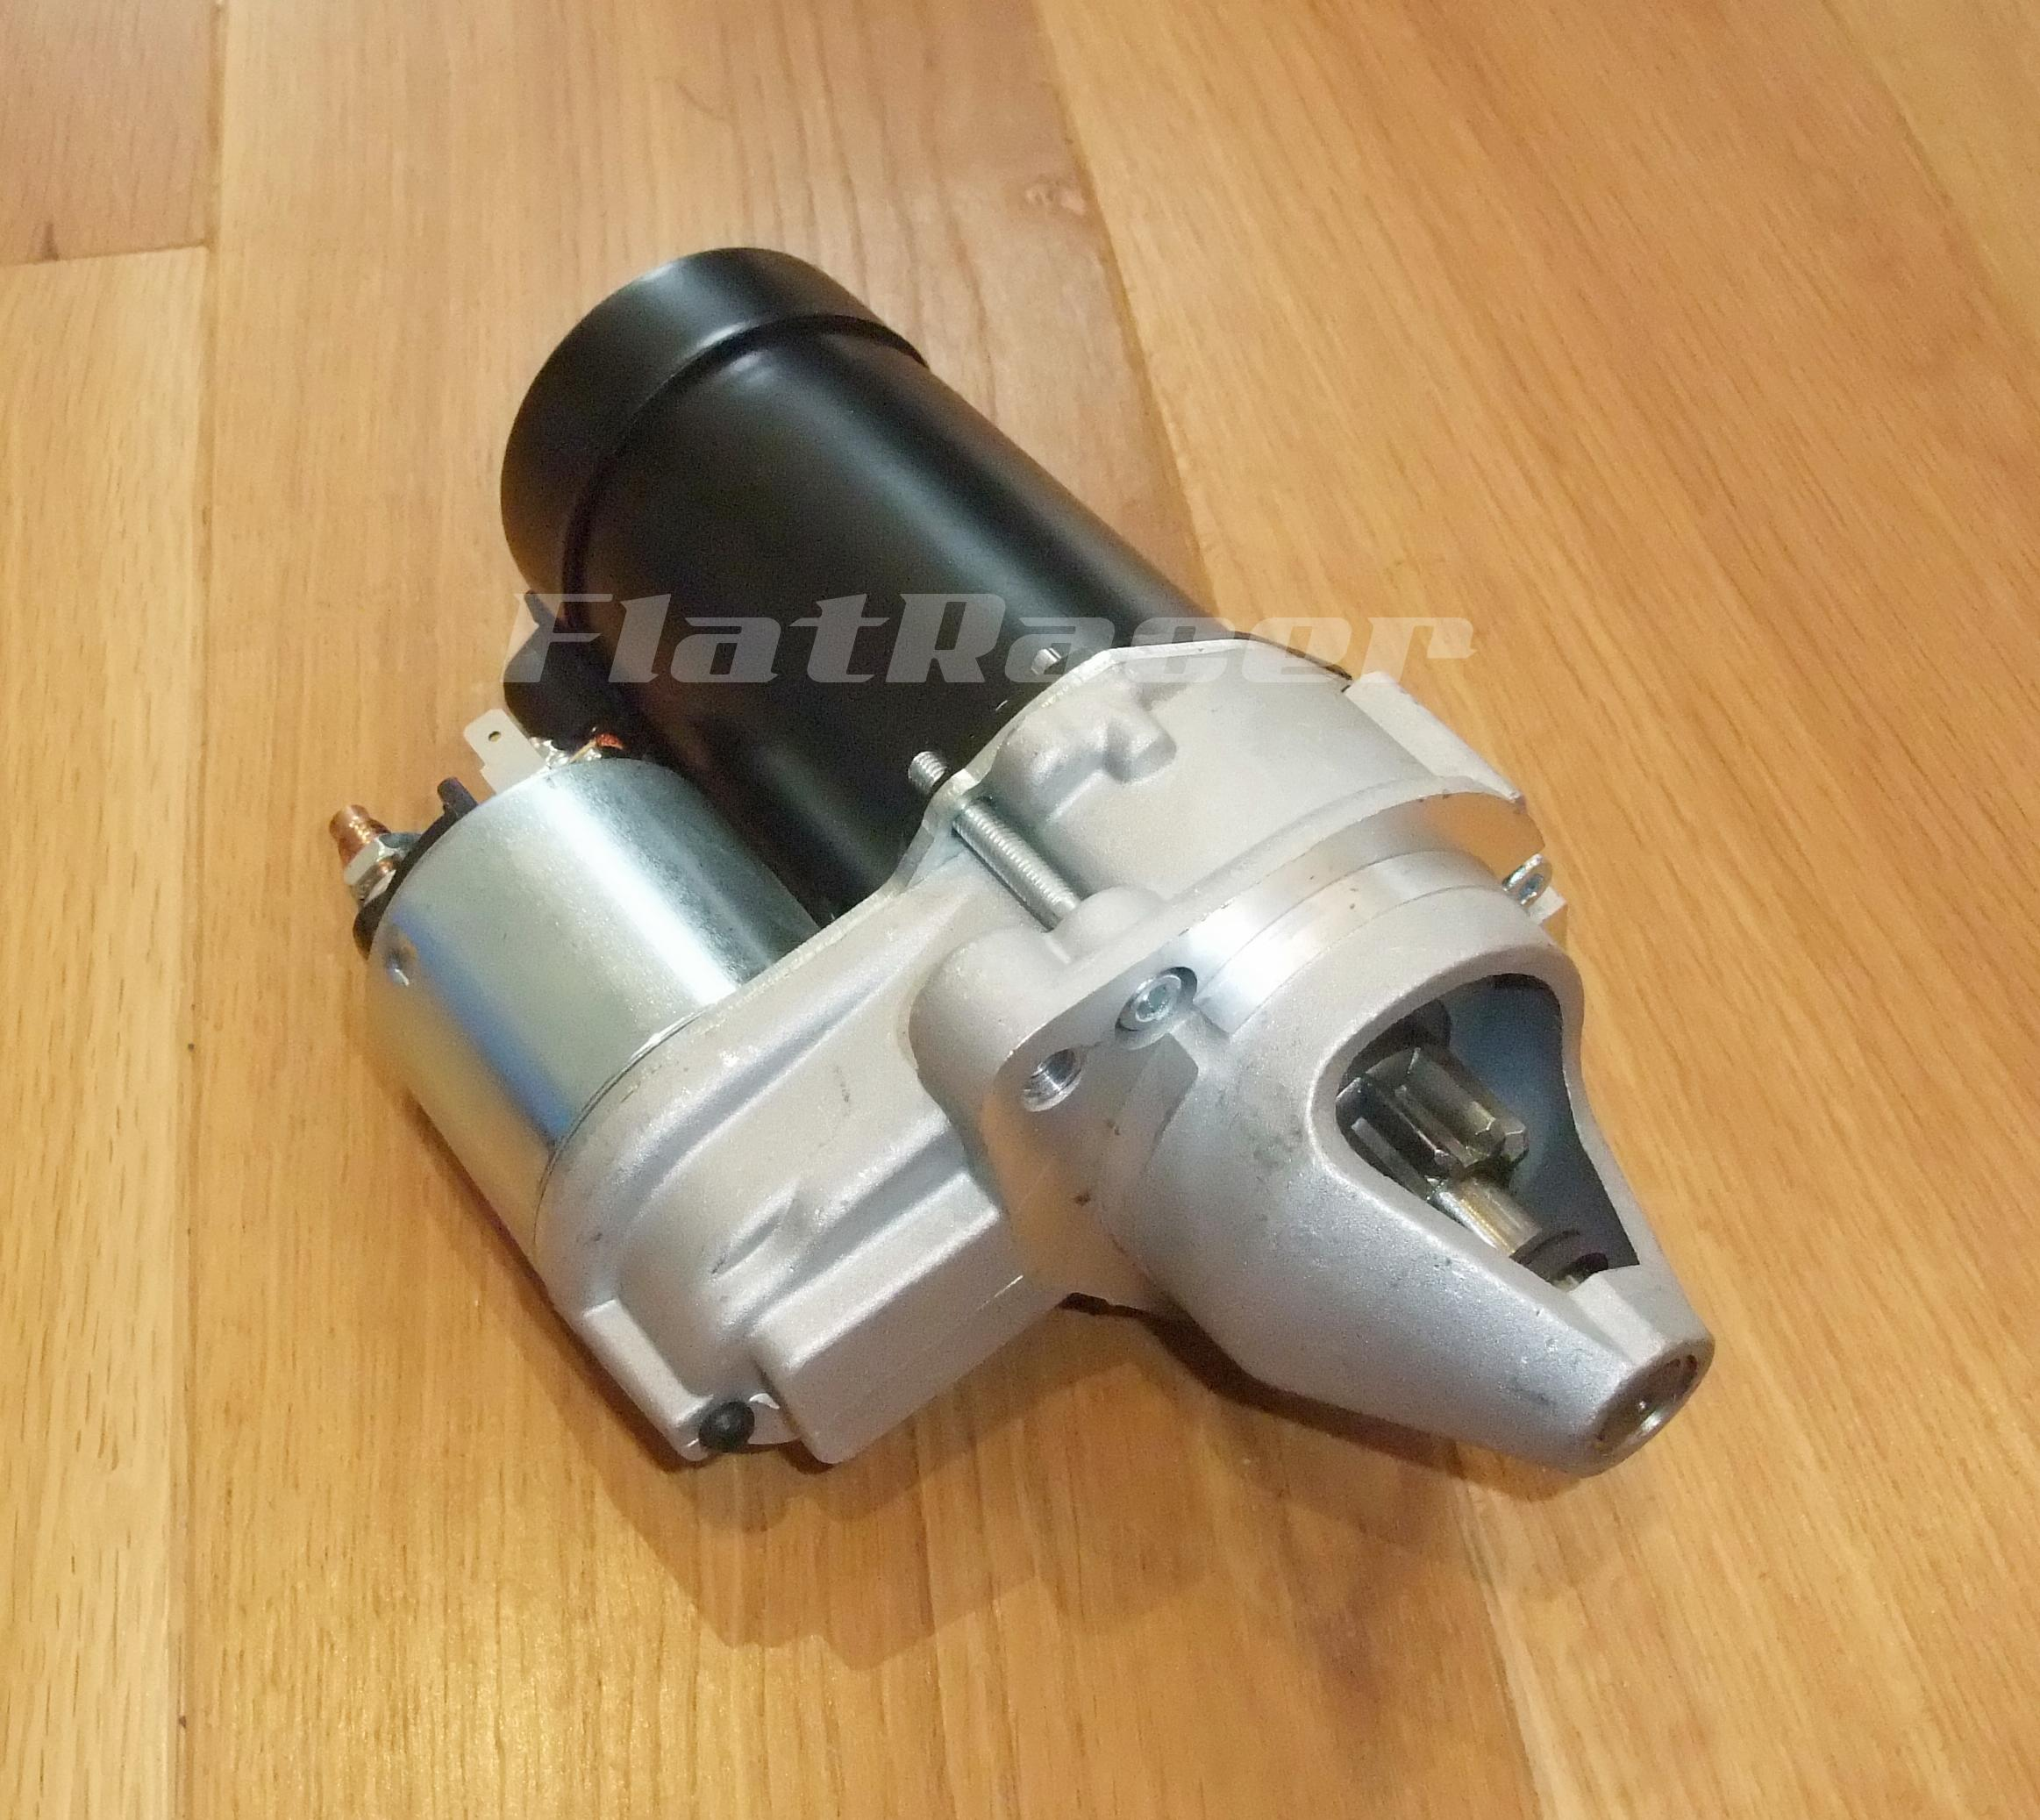 BMW Airhead Boxer post 09/74 9 teeth starter motor